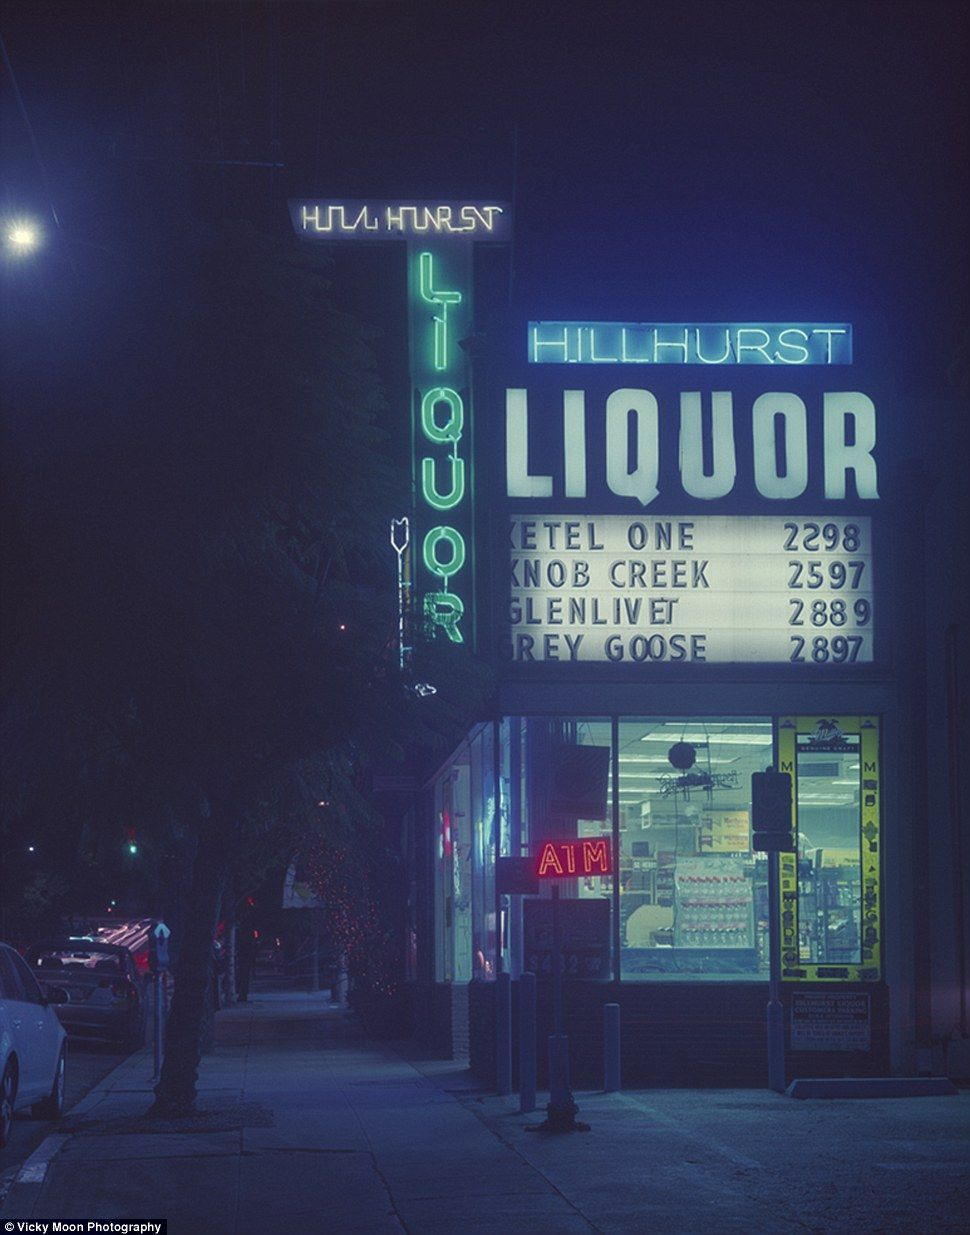 After Dark Brightness And Beauty From Liquor Stores To